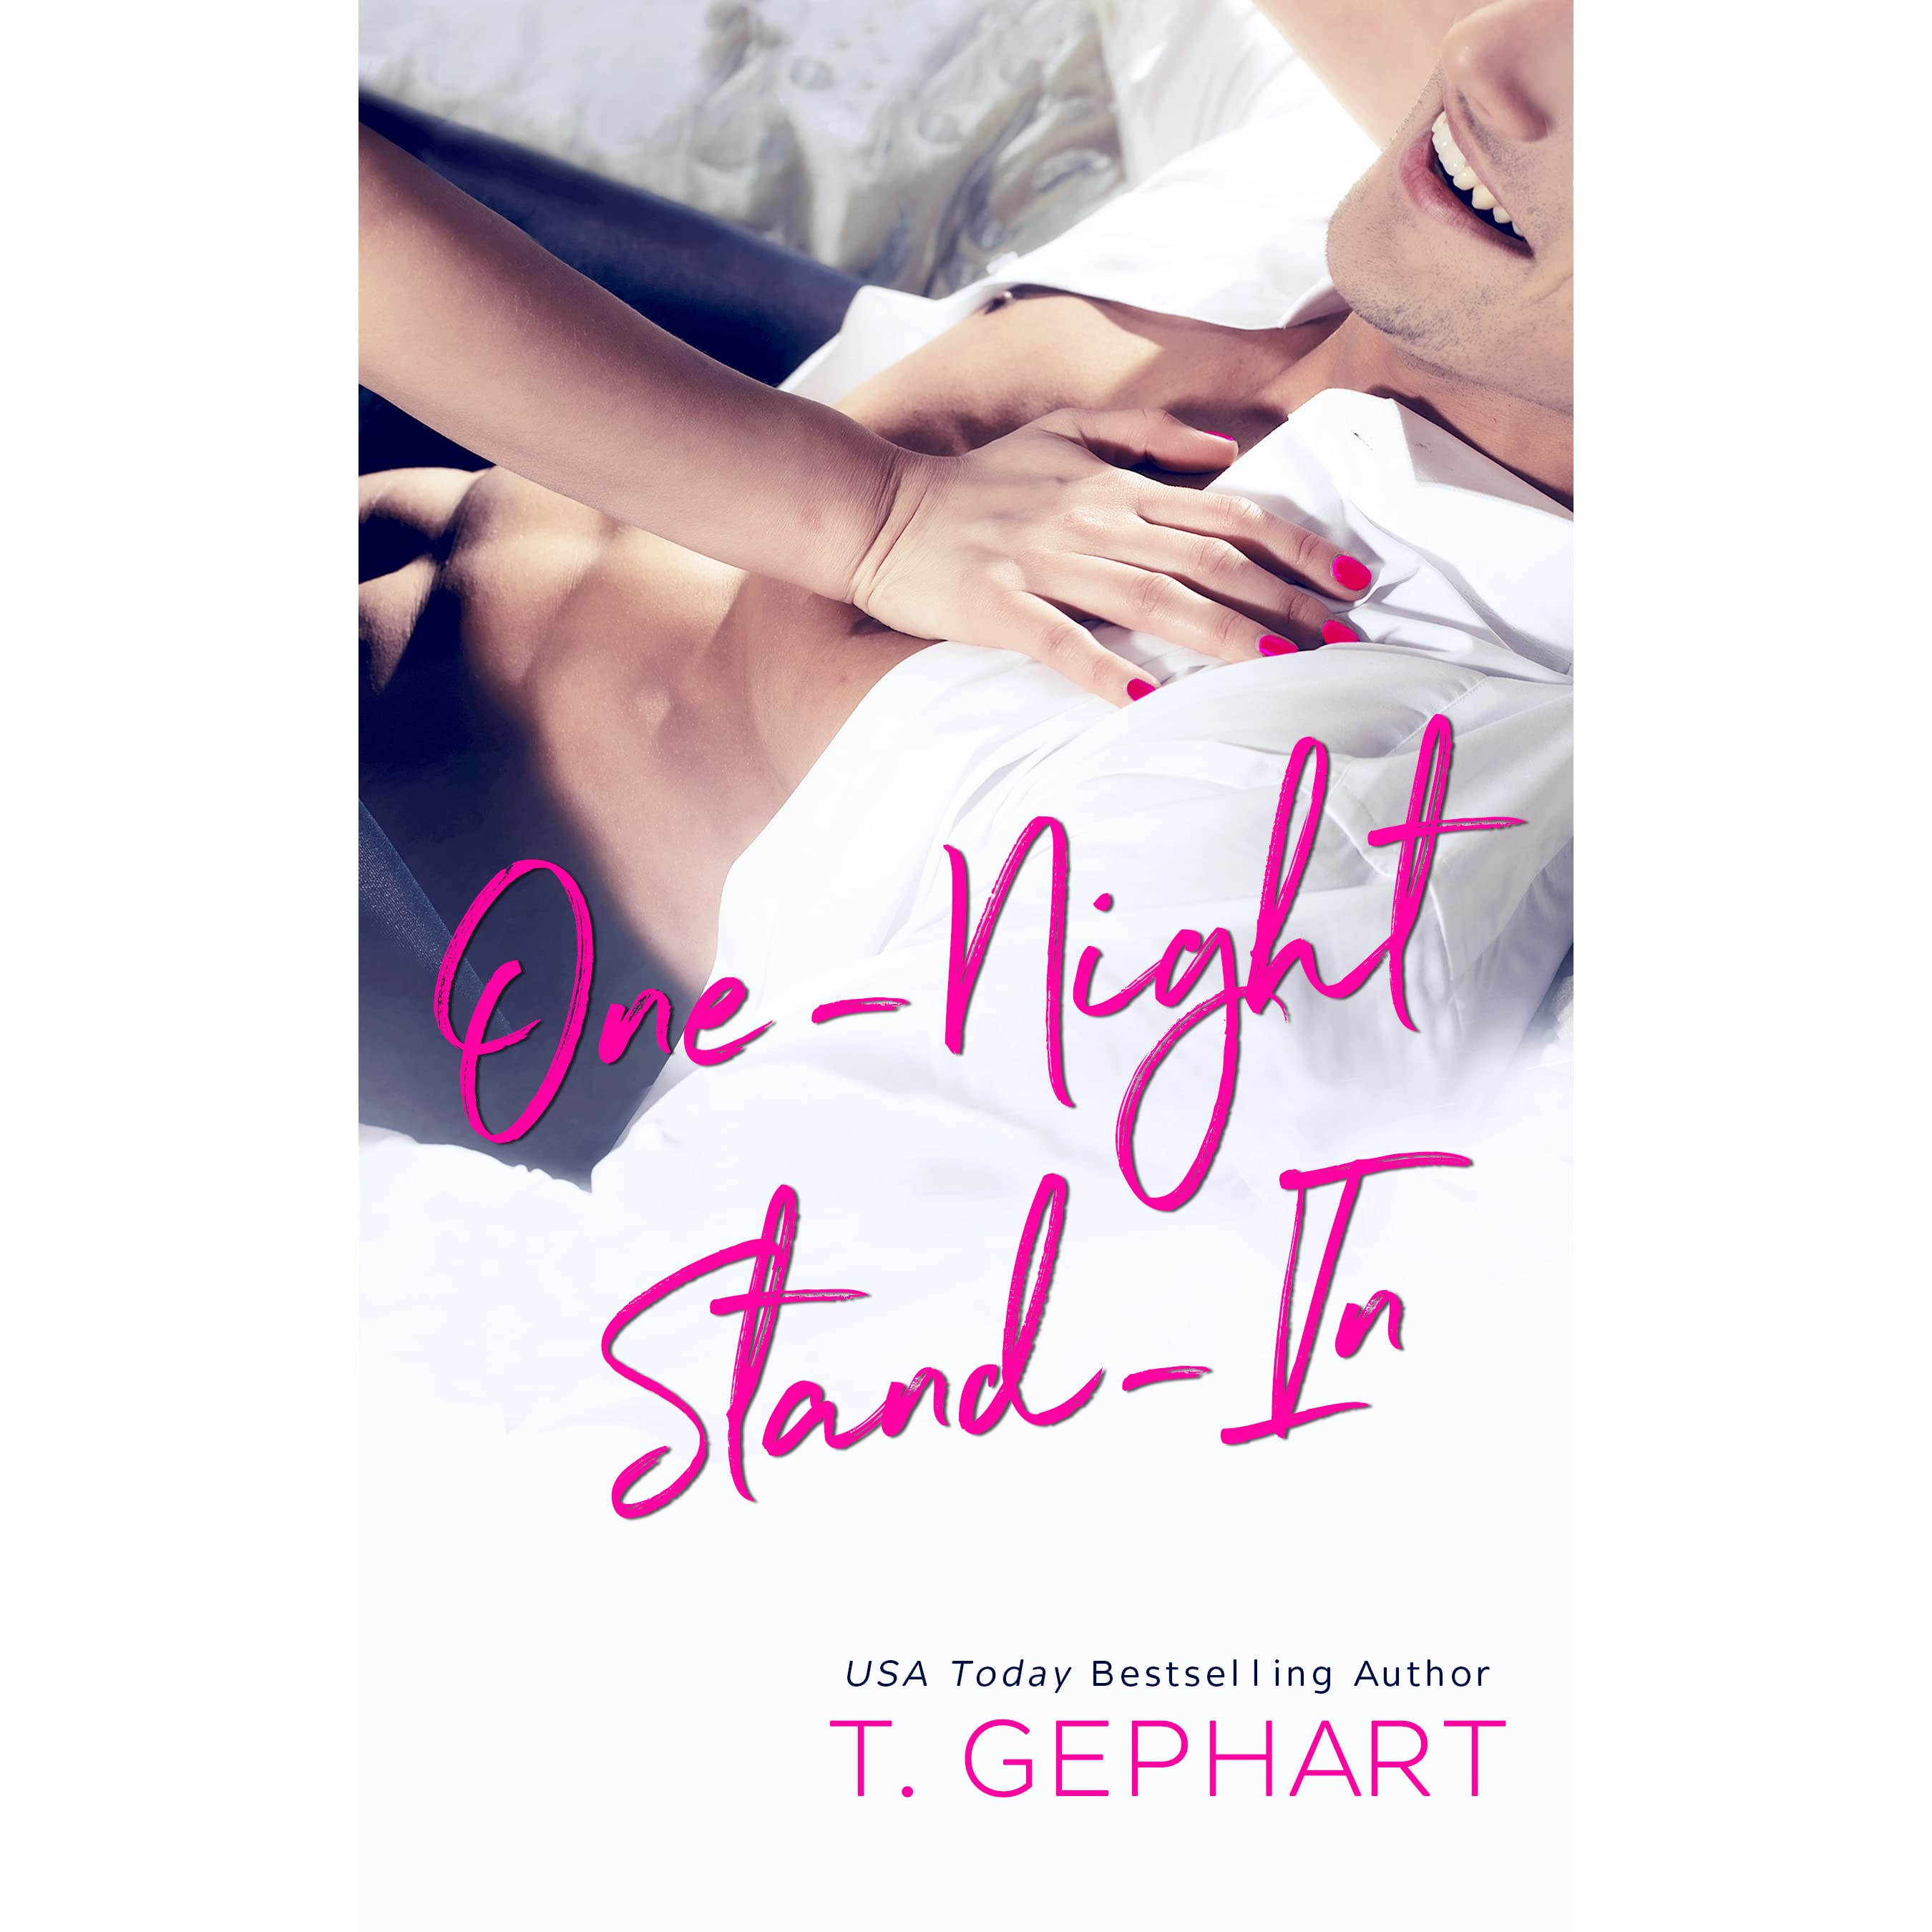 One-Night Stand-In by T. Gephart